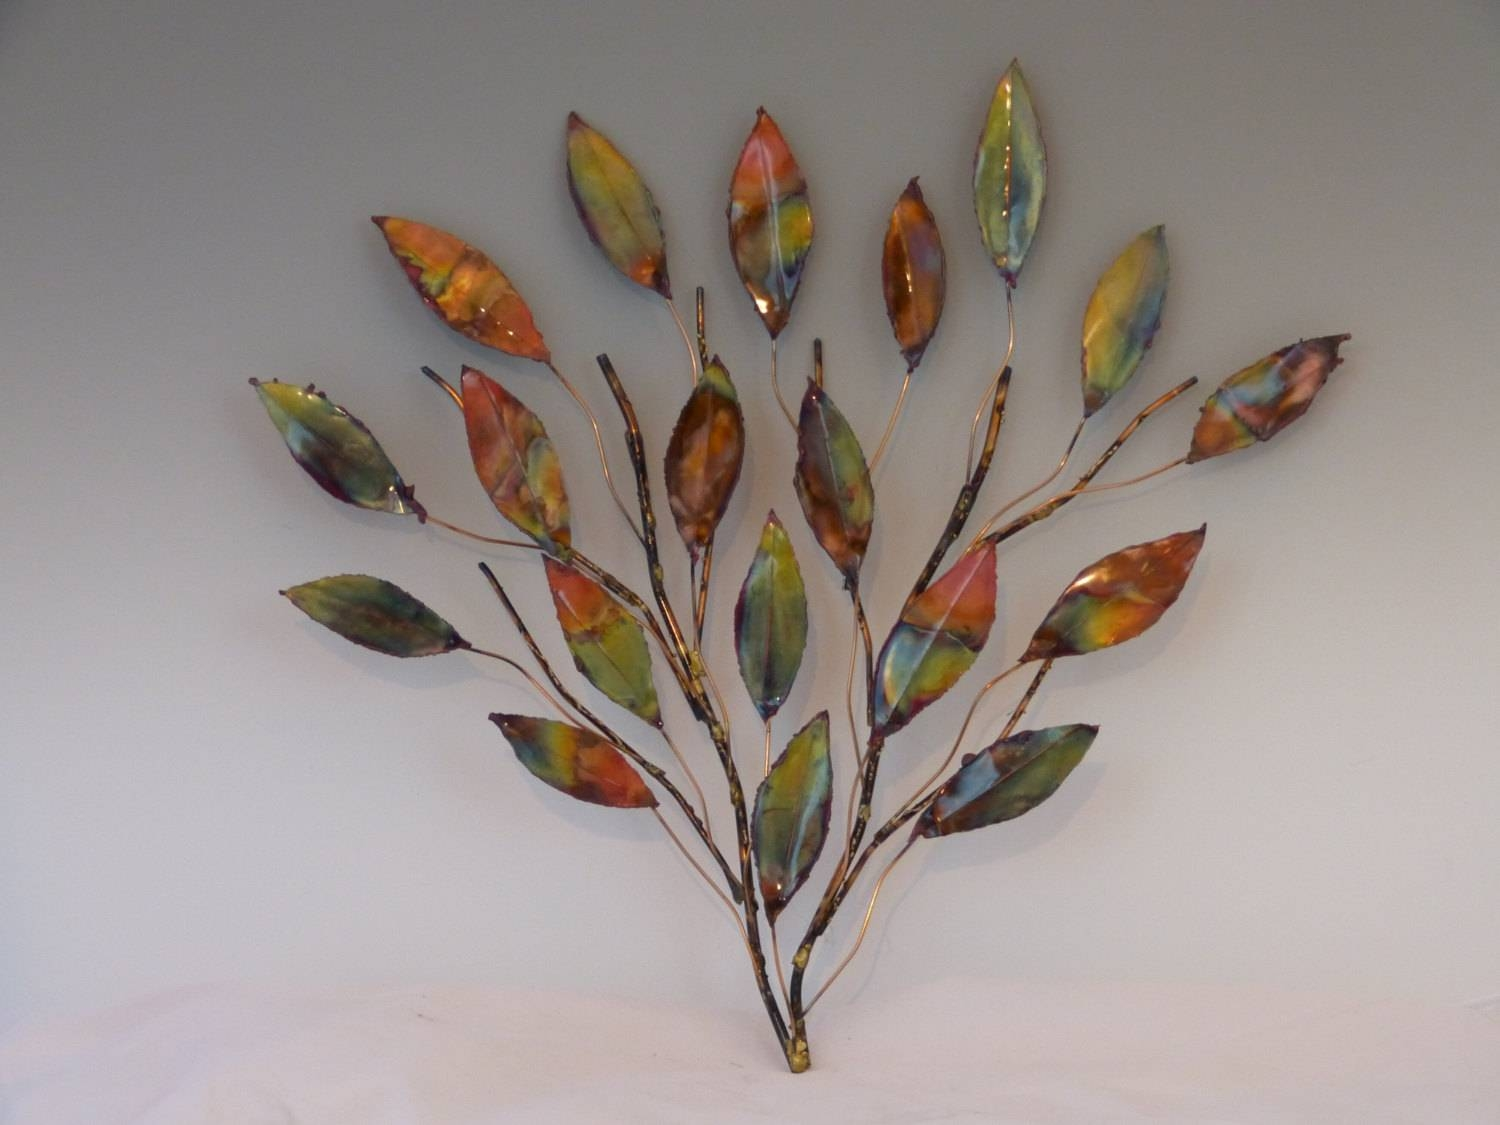 Copper Branch Sculpture: Metal Sculpture Home Decor Wall Art Inside Most Recent Leaf Metal Wall Art (View 4 of 20)